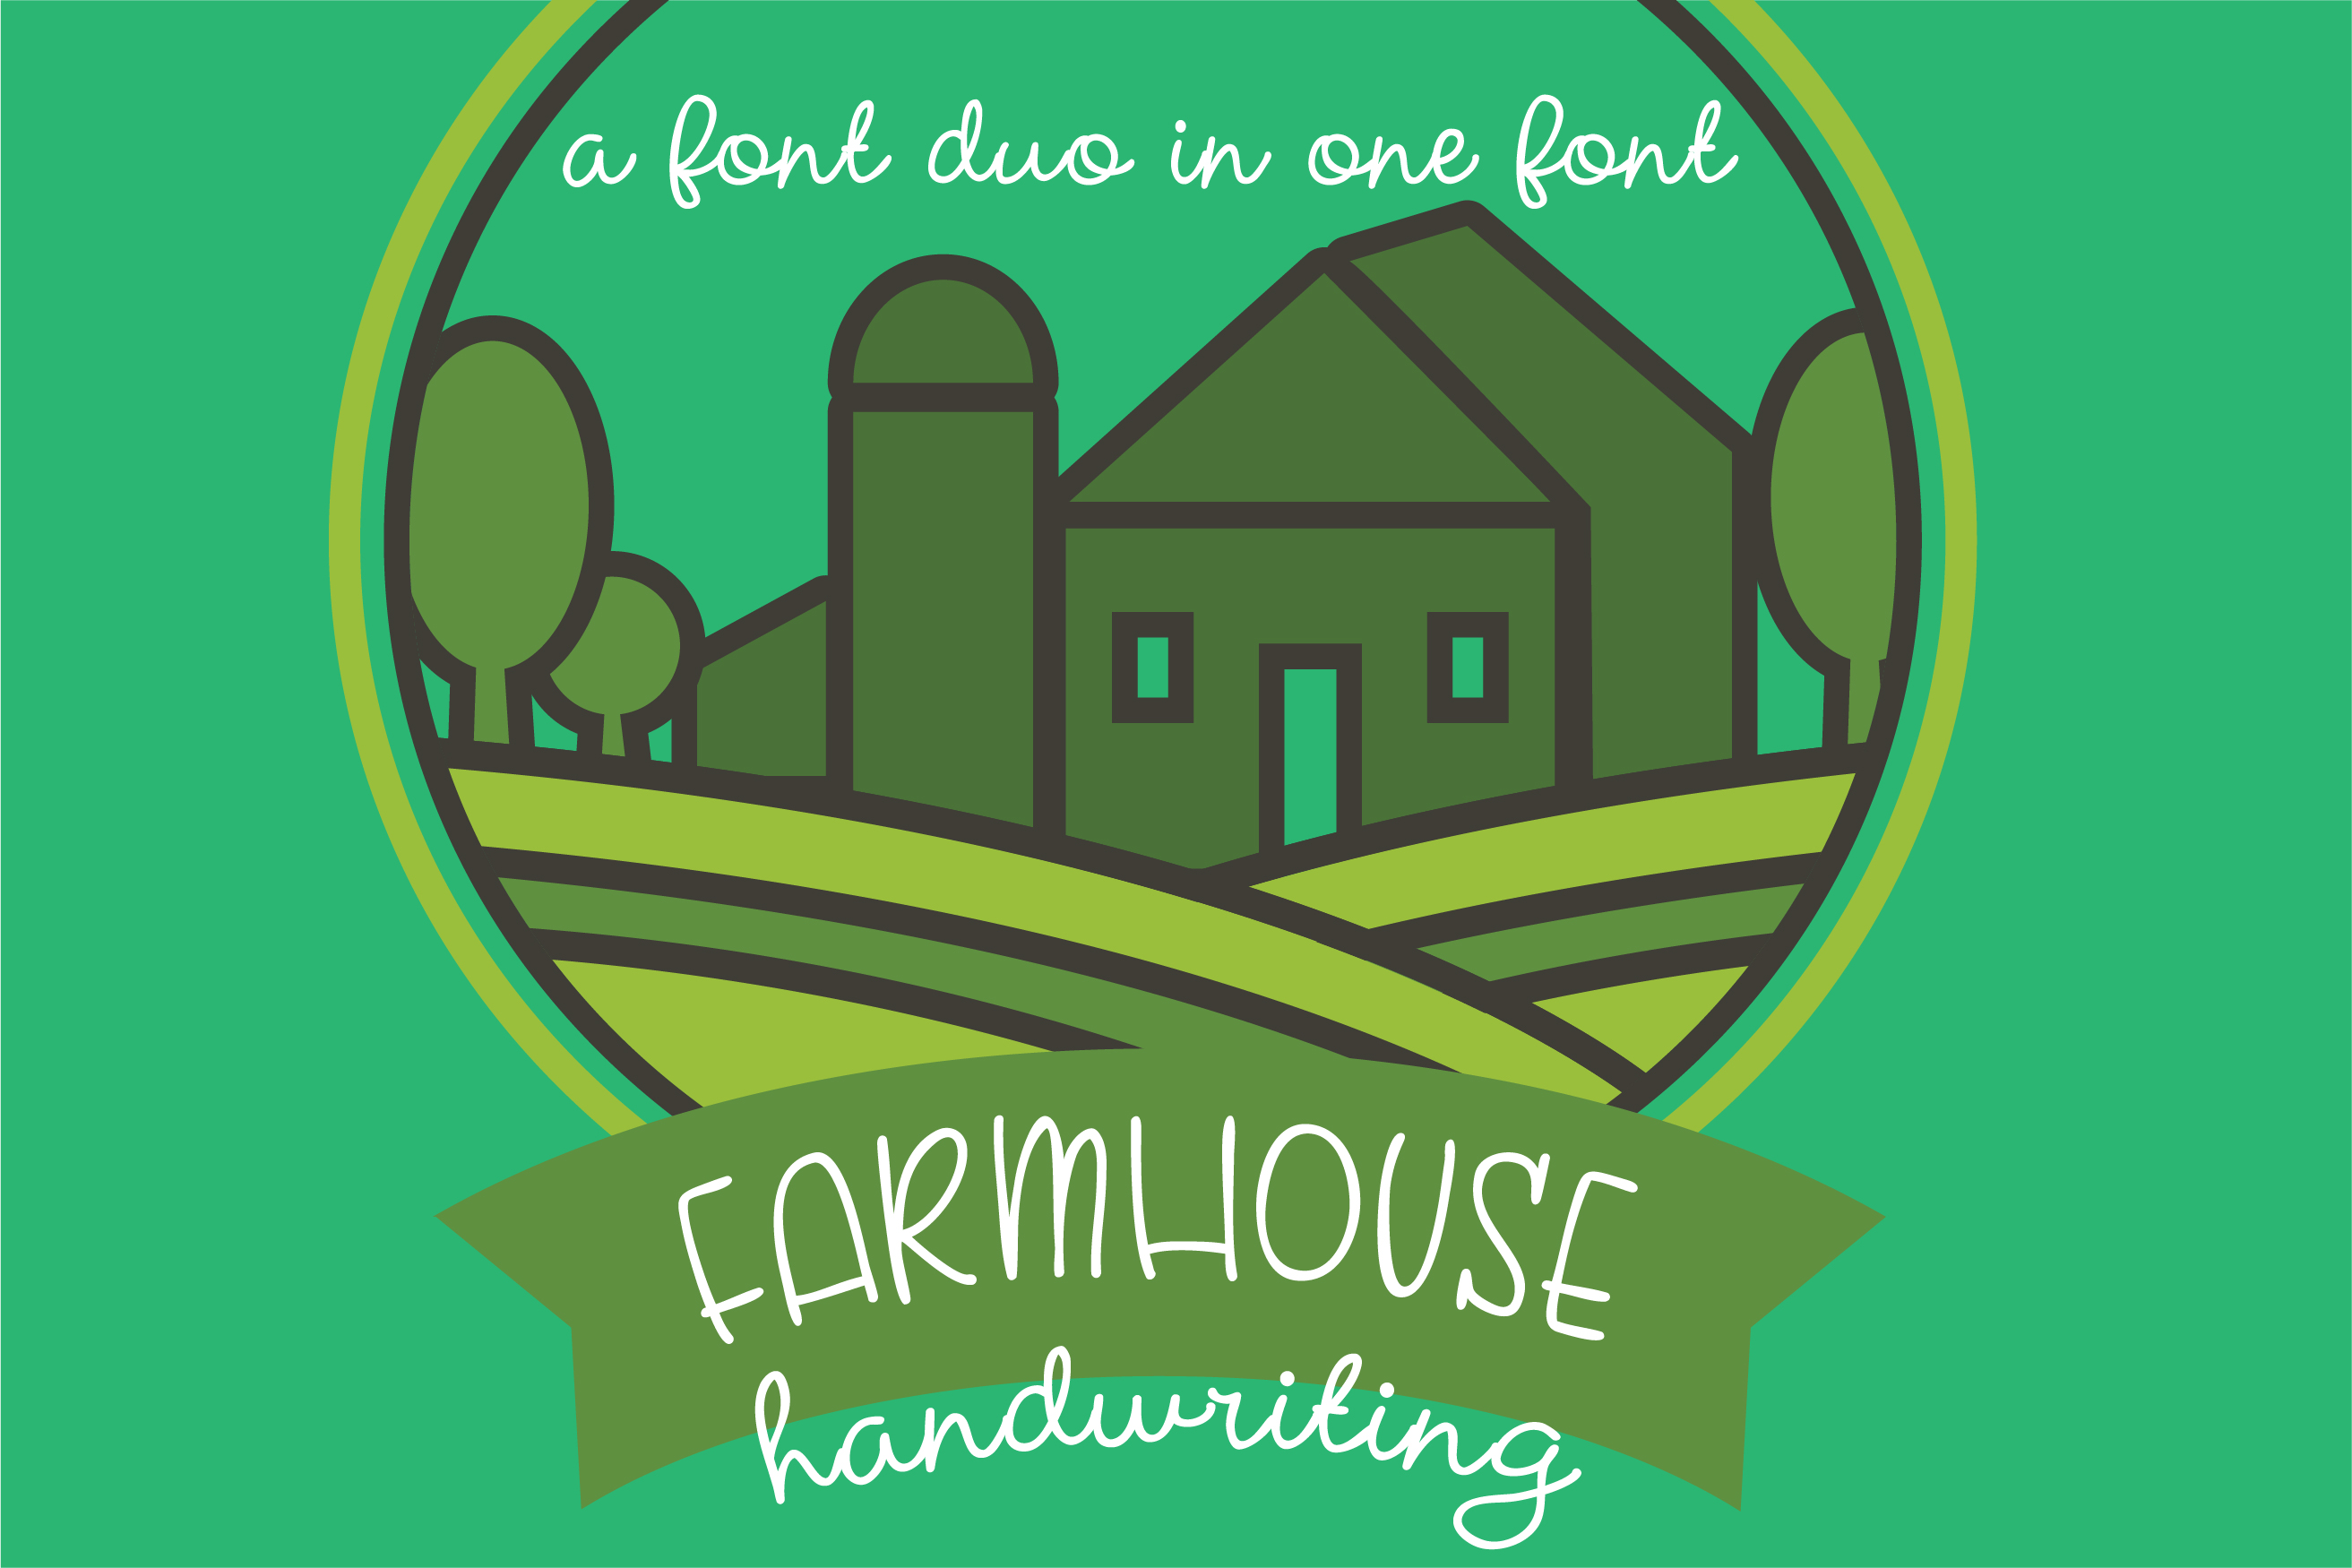 PN Farmhouse Handwriting example image 1